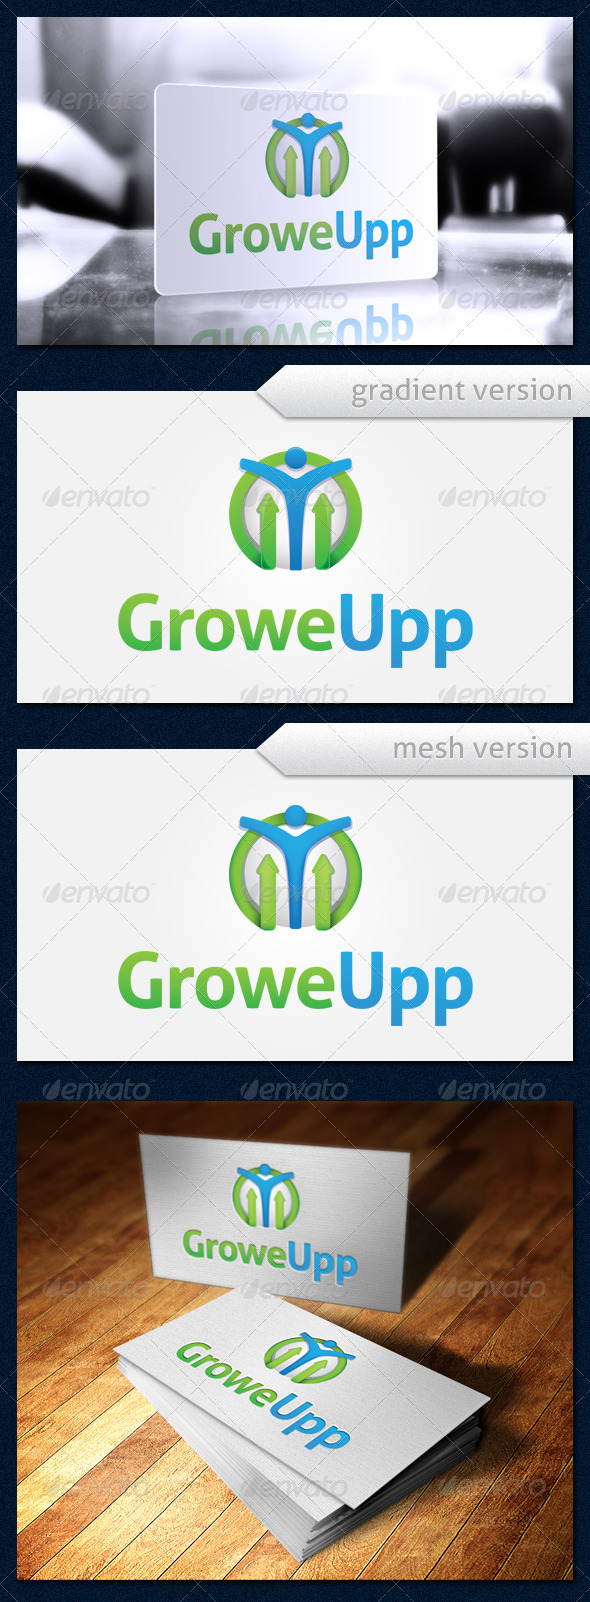 GroweUpp Logo